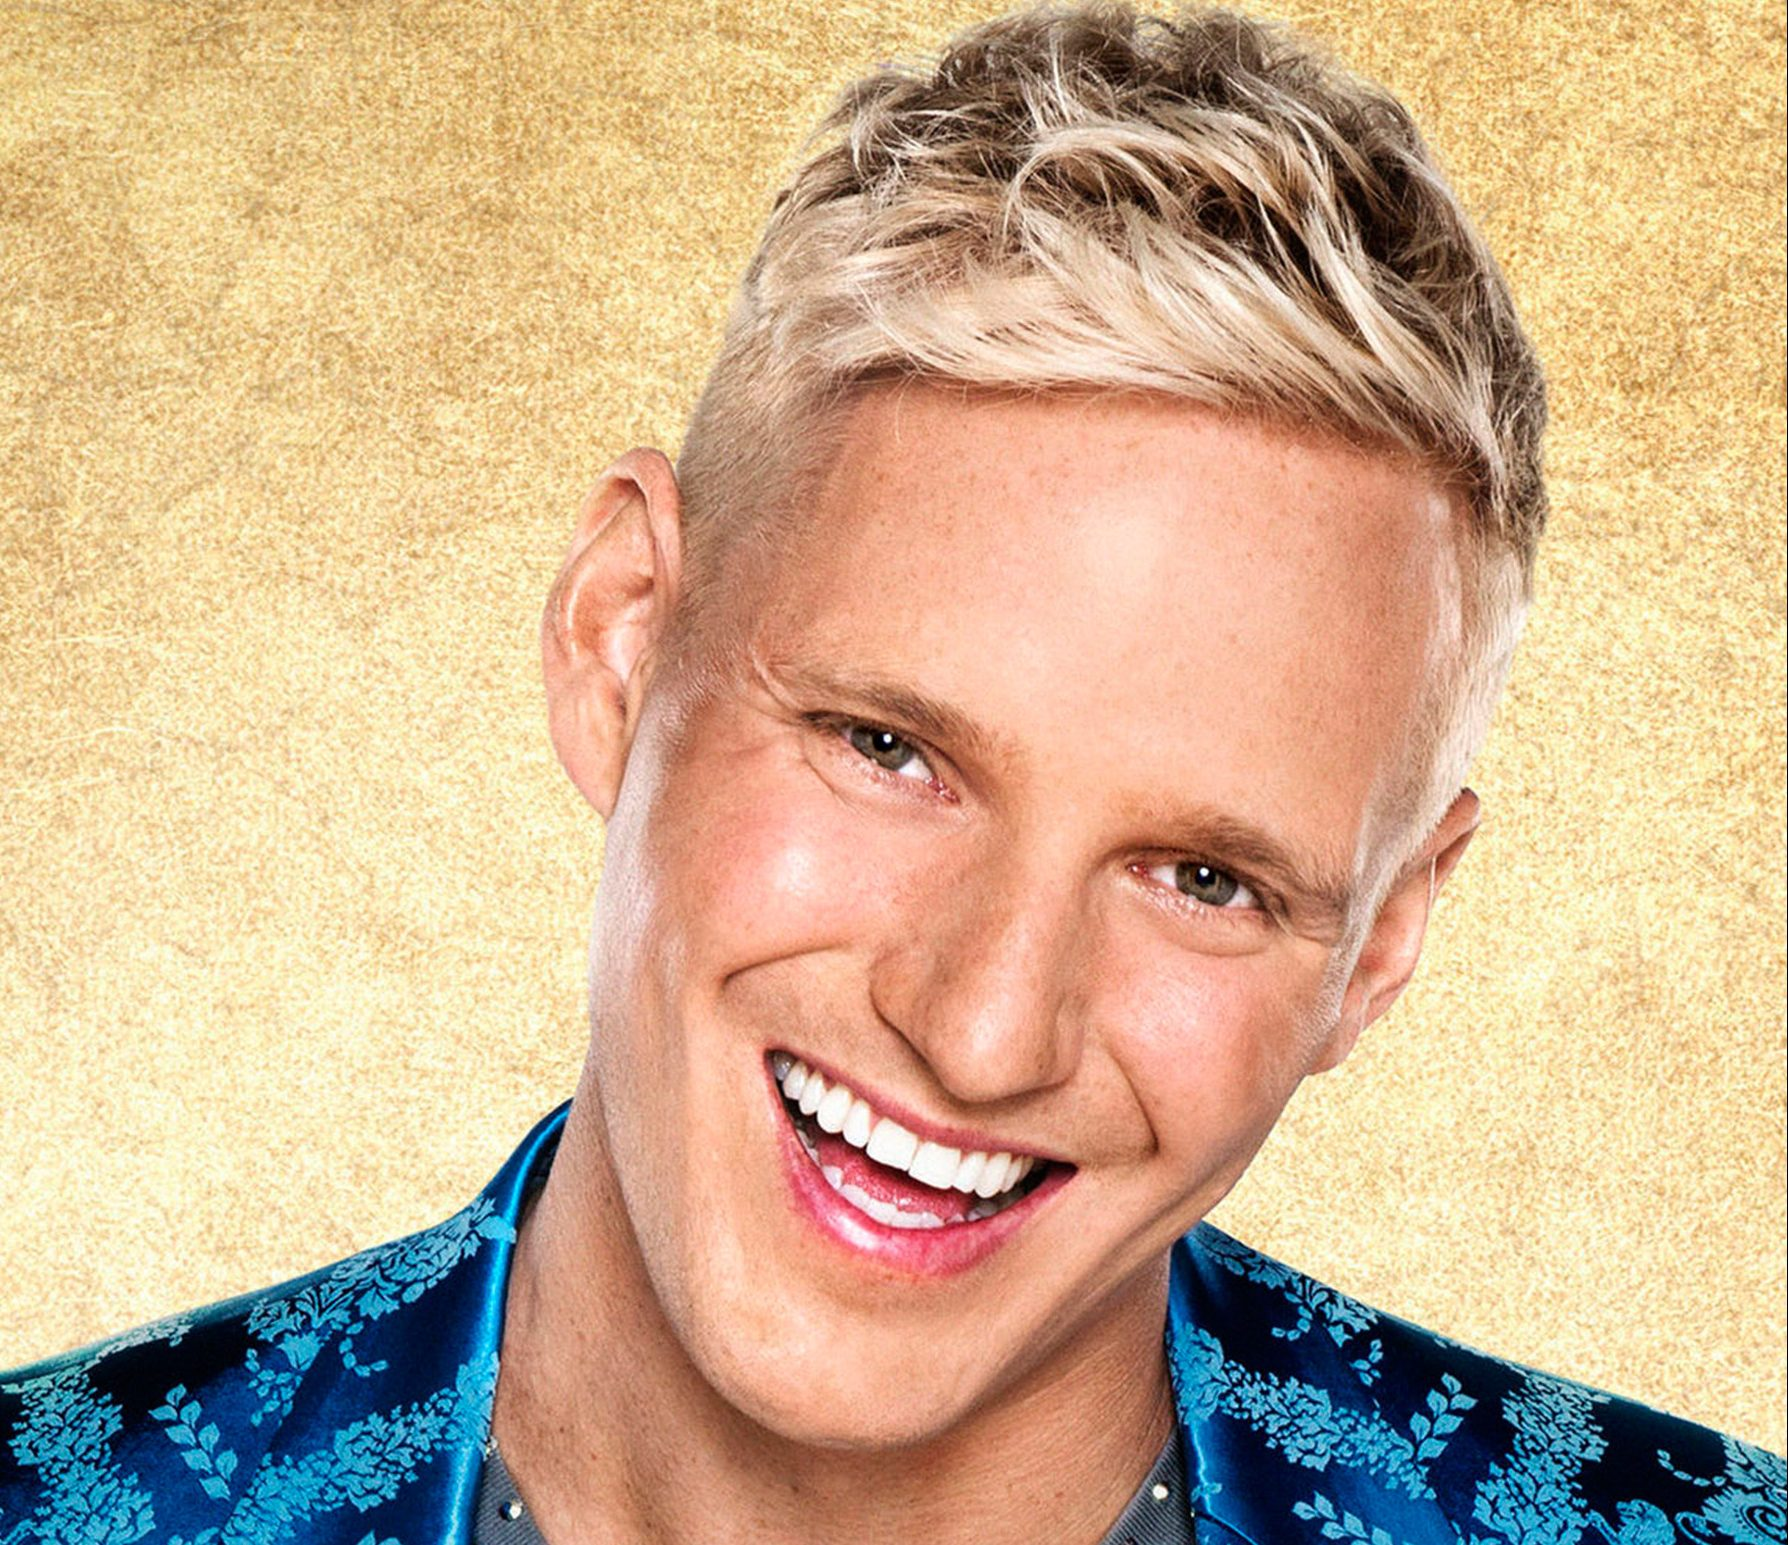 Who is Strictly 2020 star Jamie Laing?